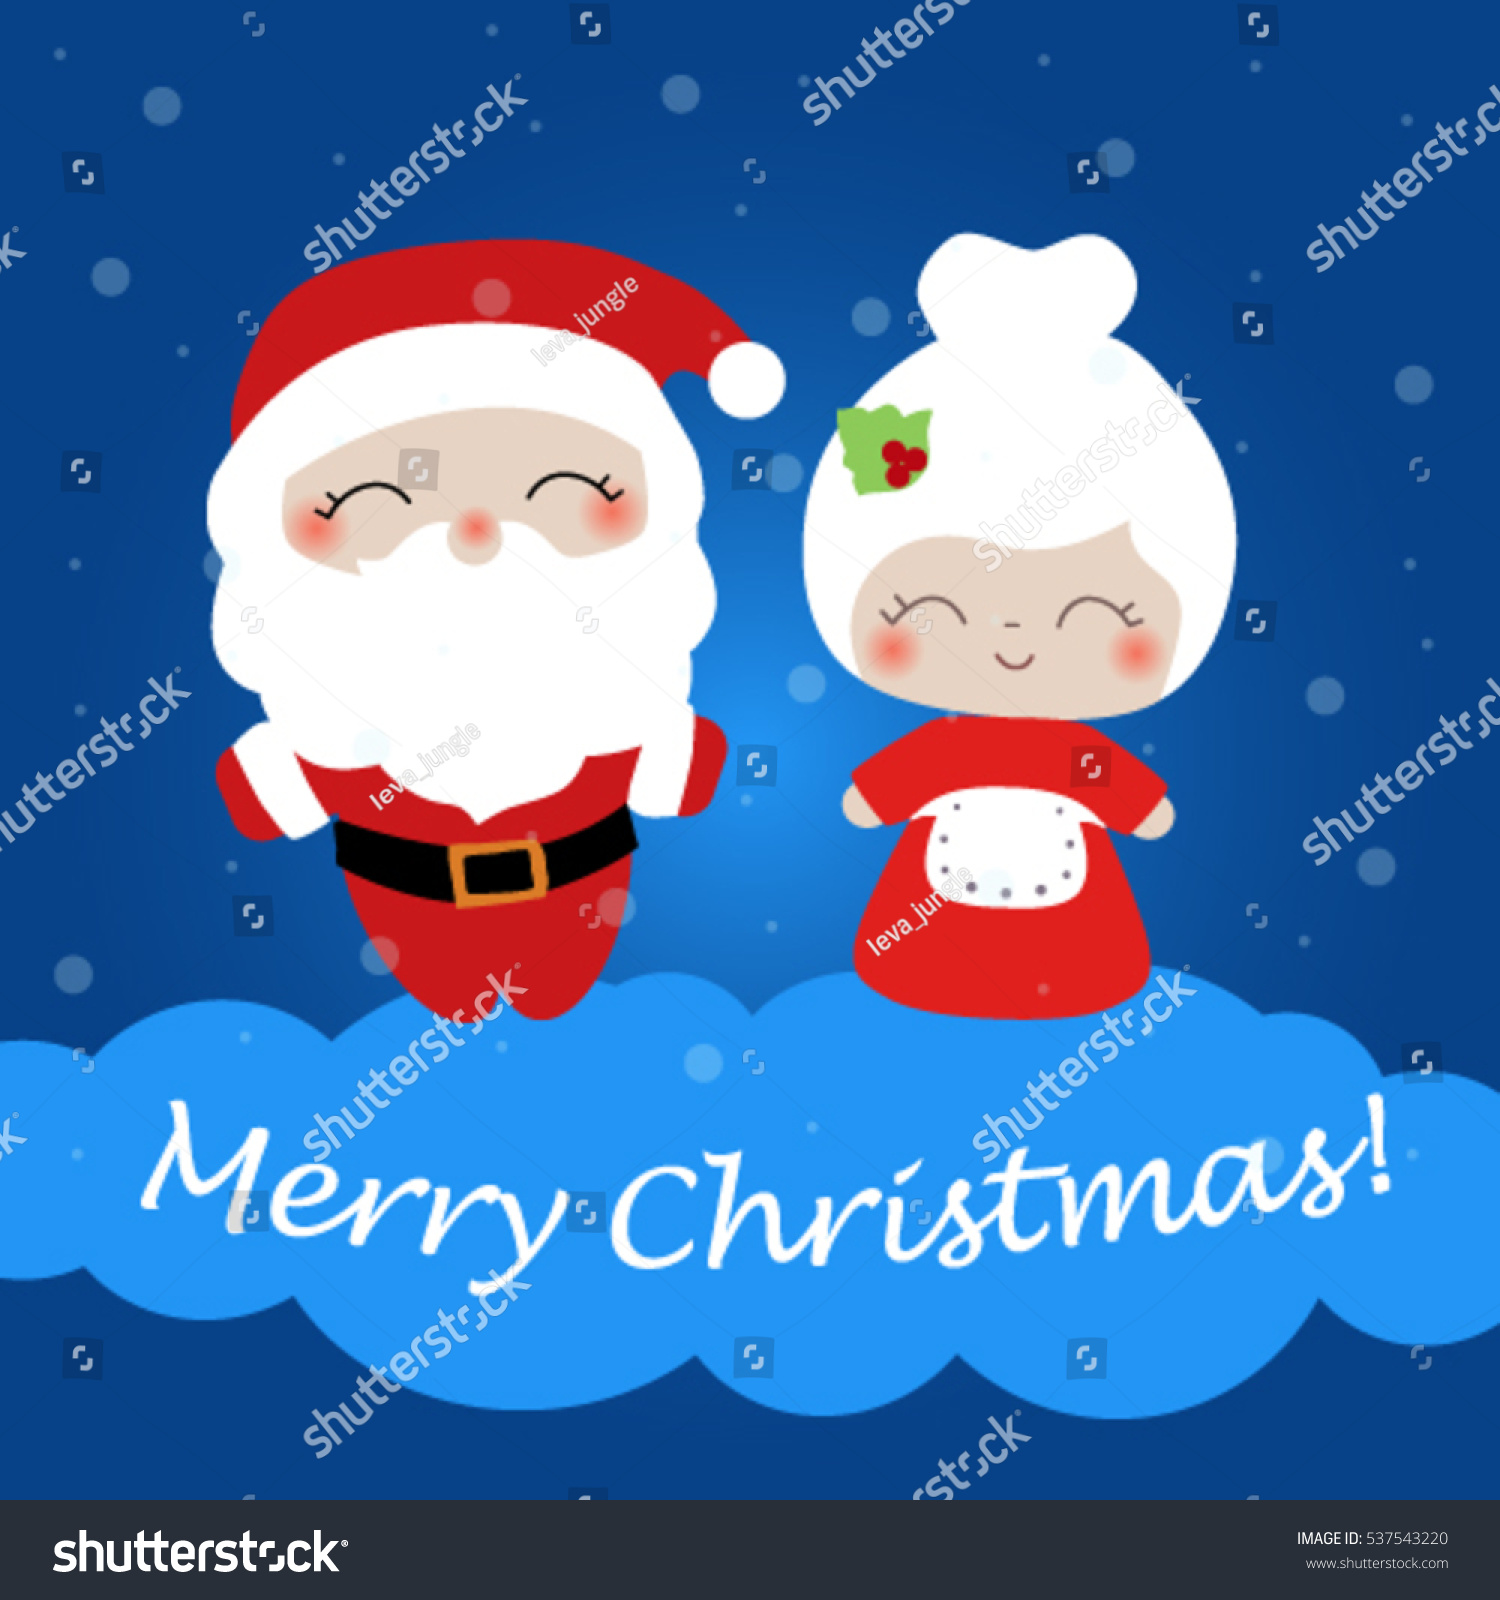 Christmas Card With Merry Christmas Words. Santa Claus And Mrs. Claus  Christmas Card Word